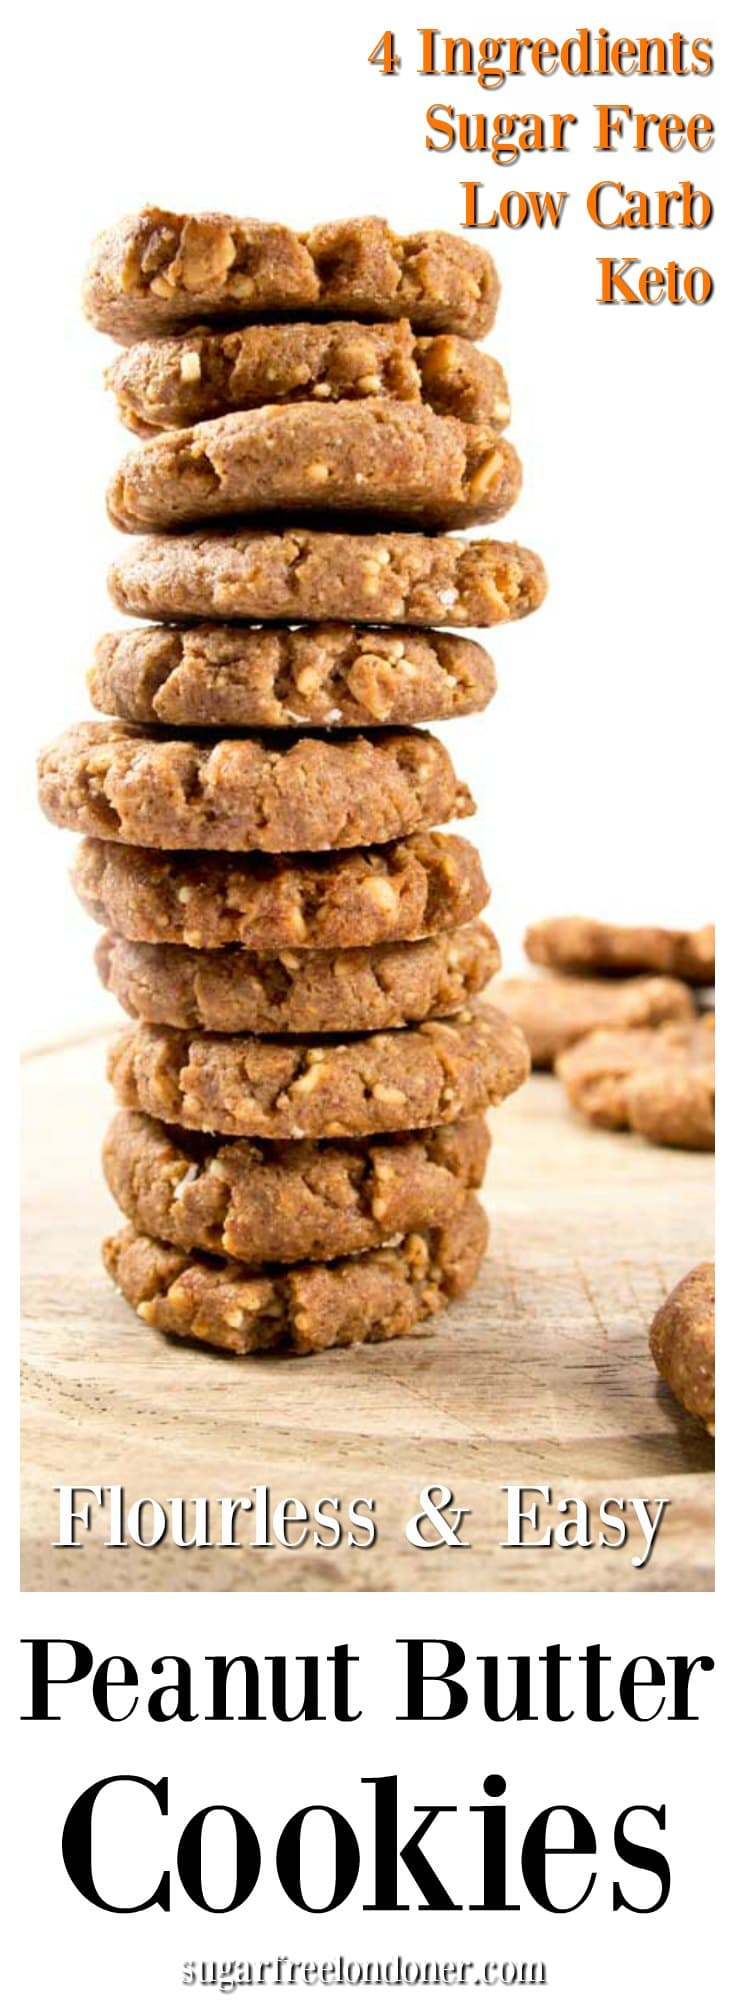 Flourless low carb peanut butter cookies - easy, quick and only 4 ingredients needed. Perfect for low carb and keto diets. Gluten free and sugar free! #peanutbutter #cookies #lowcarb #sugarfree #keto